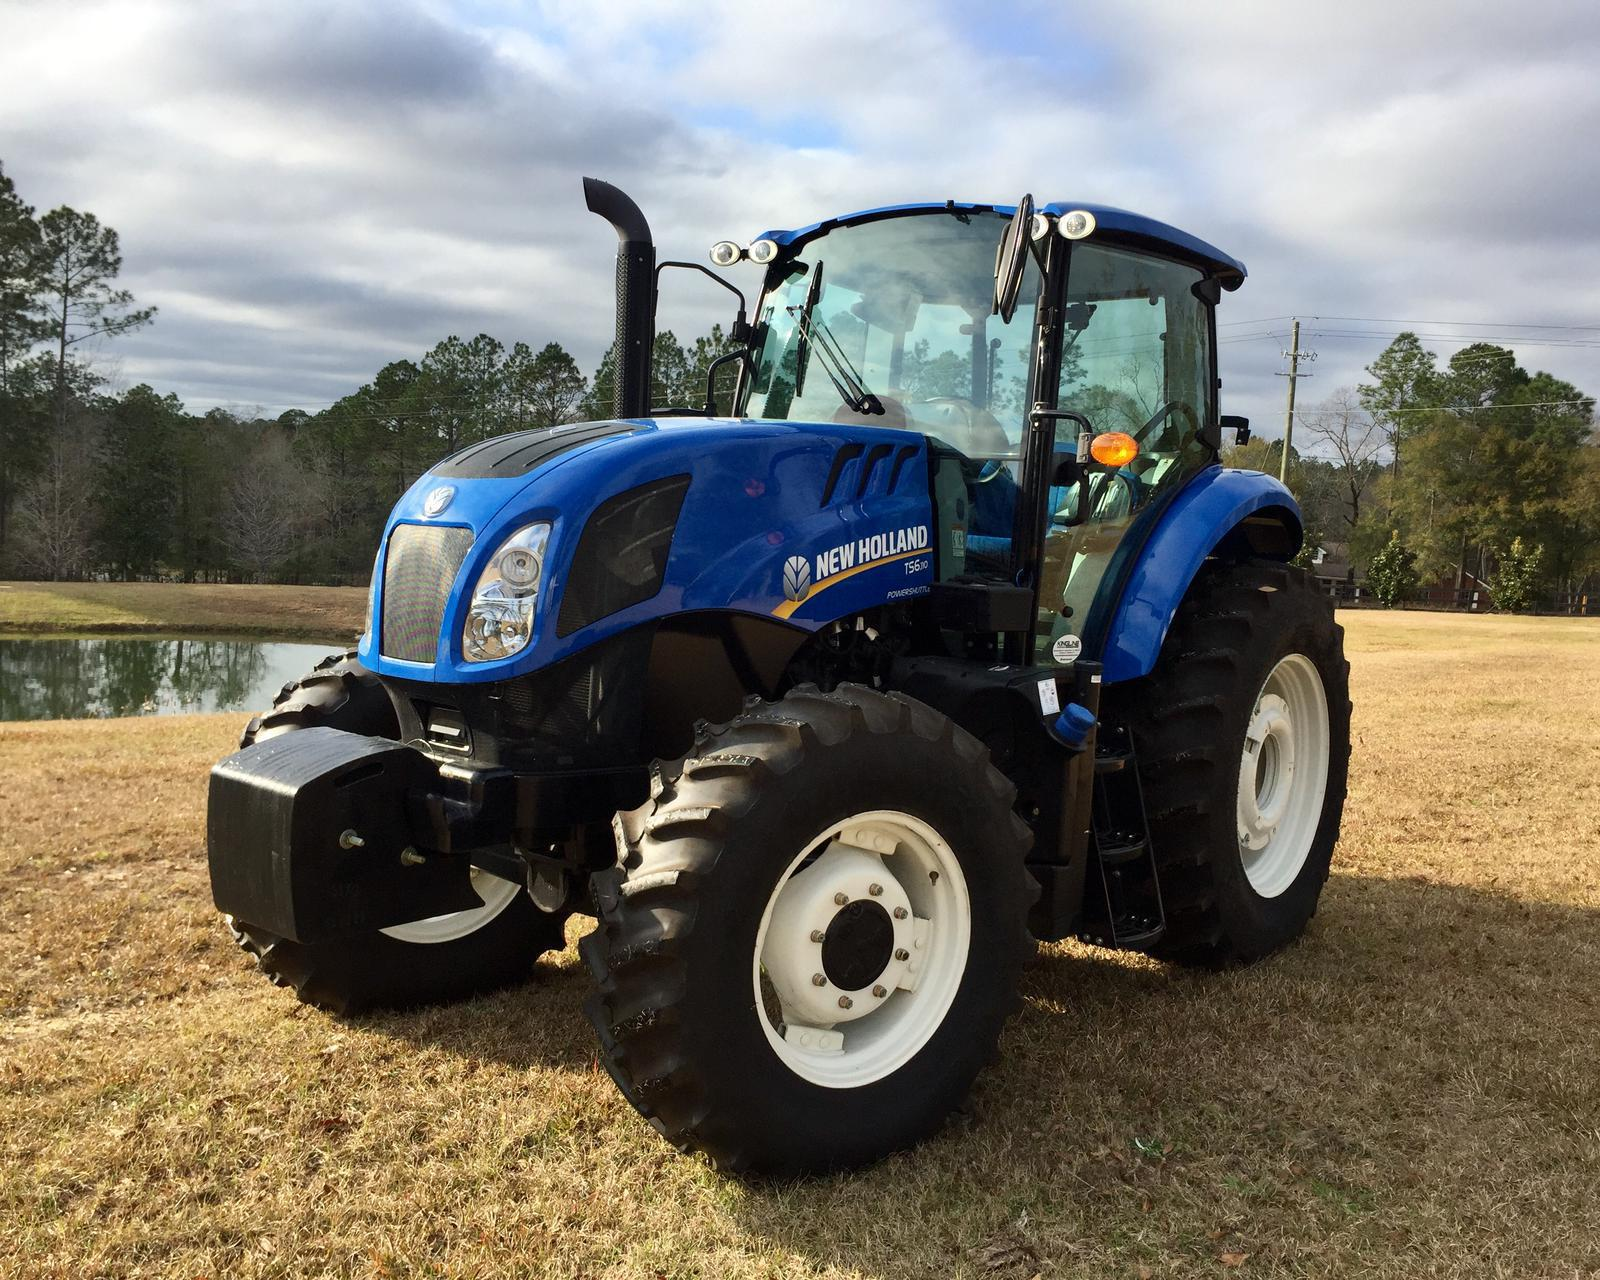 2016 New Holland Agriculture TS6 Series - Tier 4B TS6 110